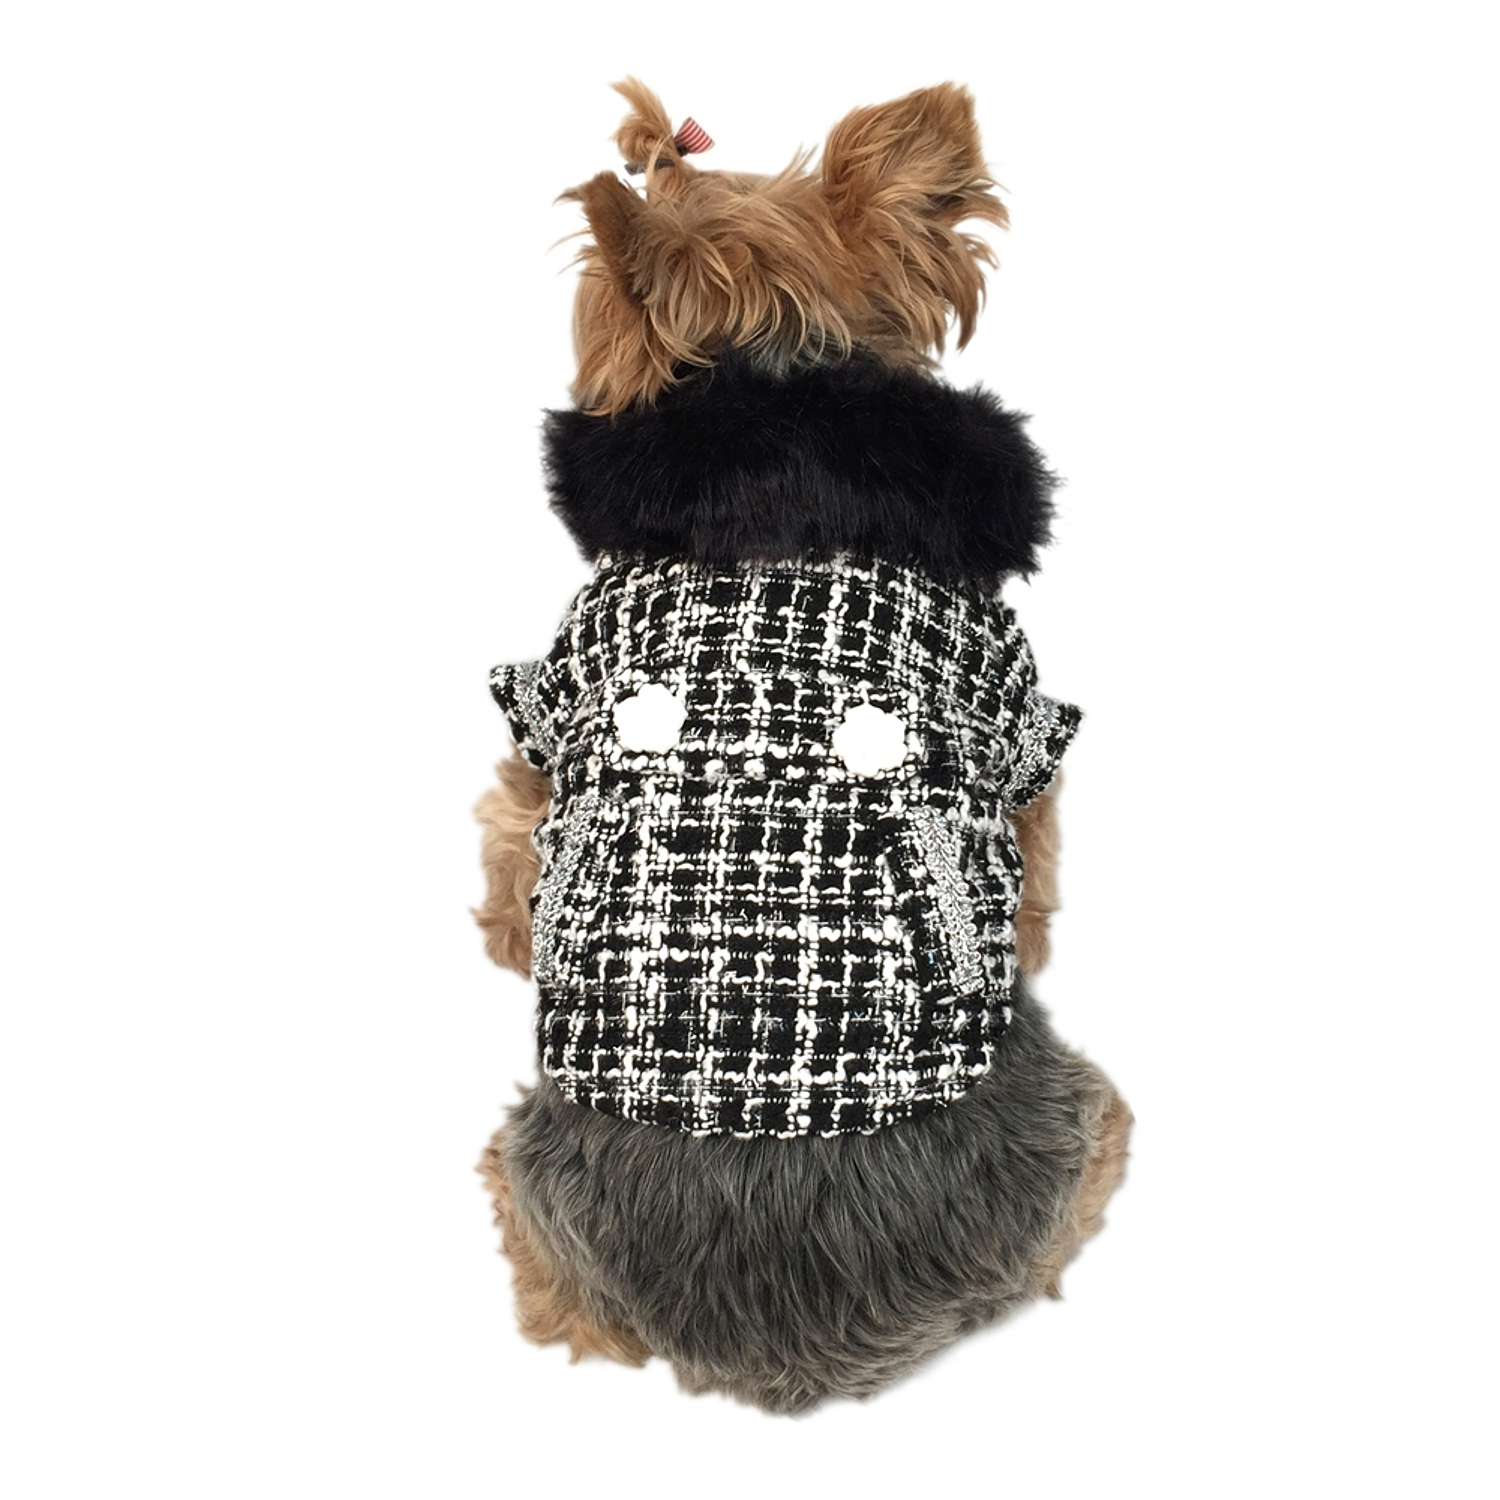 Black/White Faux Fur Collared Fashion Trench Coat Warm Winter Apparel for Puppy Dog Clothing Clothes - Small (Gift for Pet)